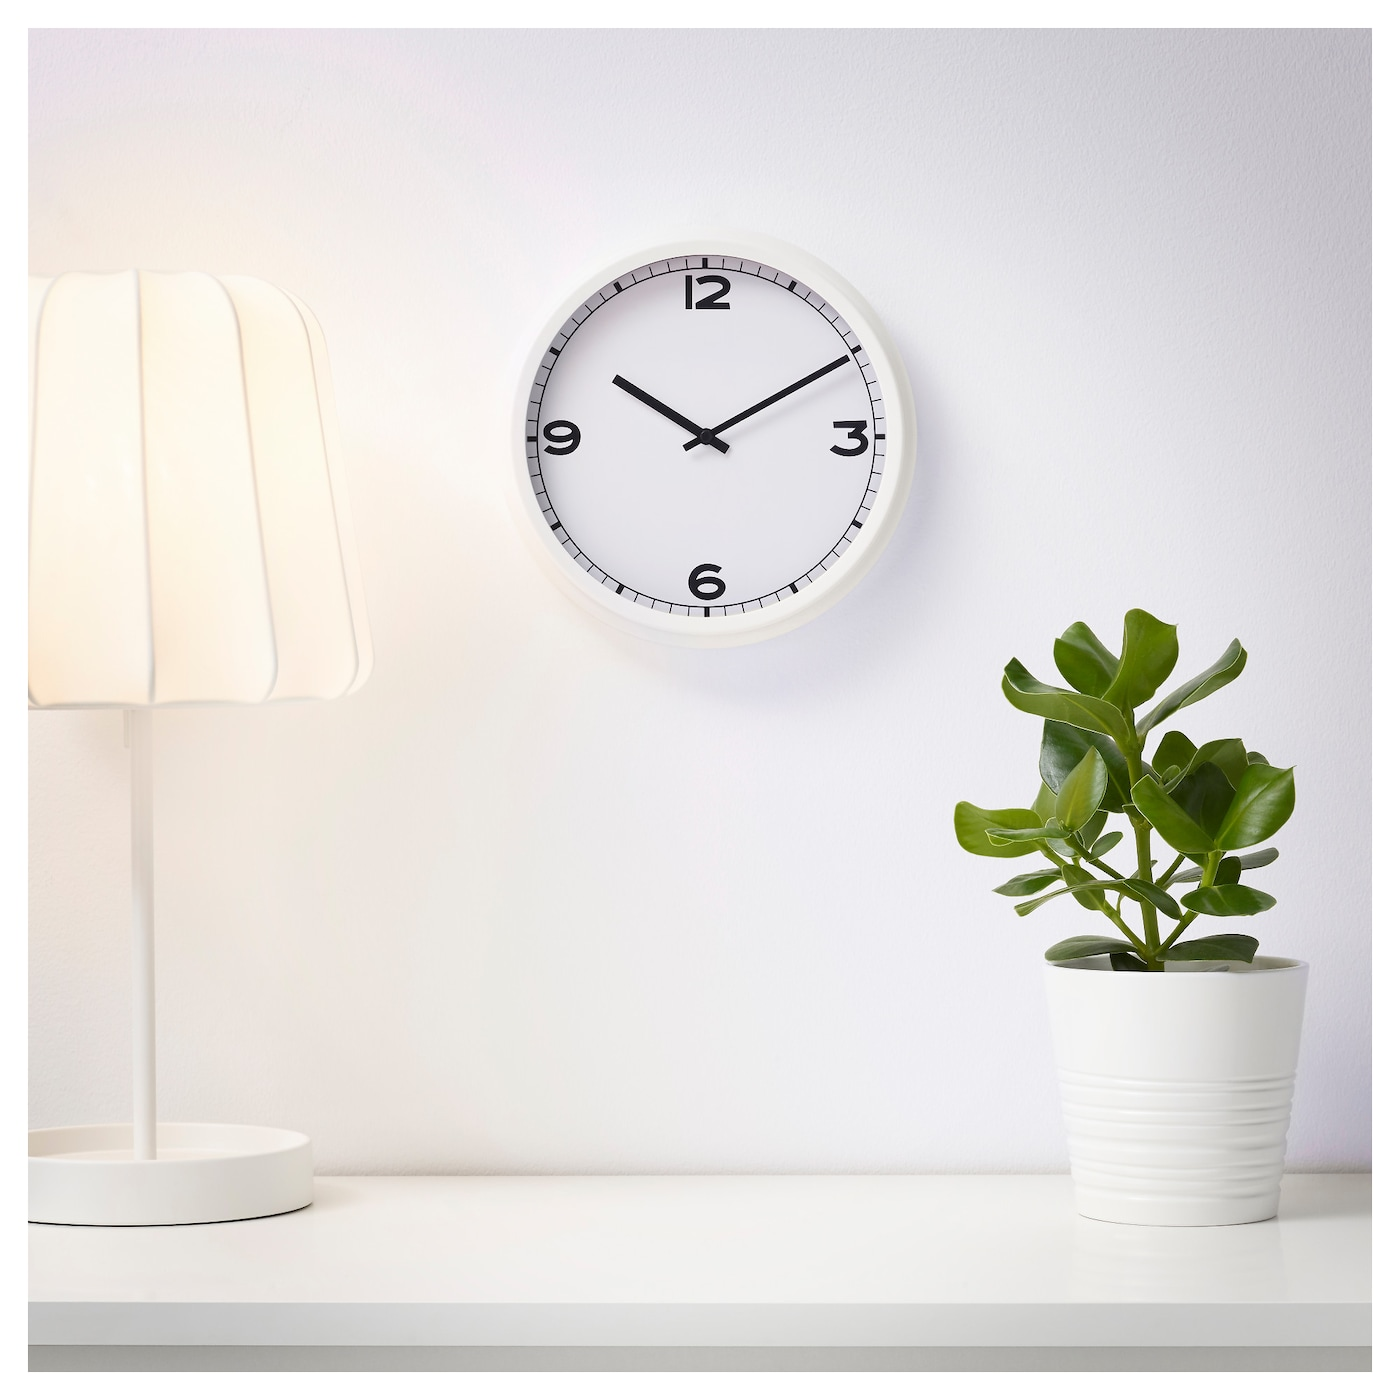 pugg horloge murale blanc 25 cm ikea. Black Bedroom Furniture Sets. Home Design Ideas